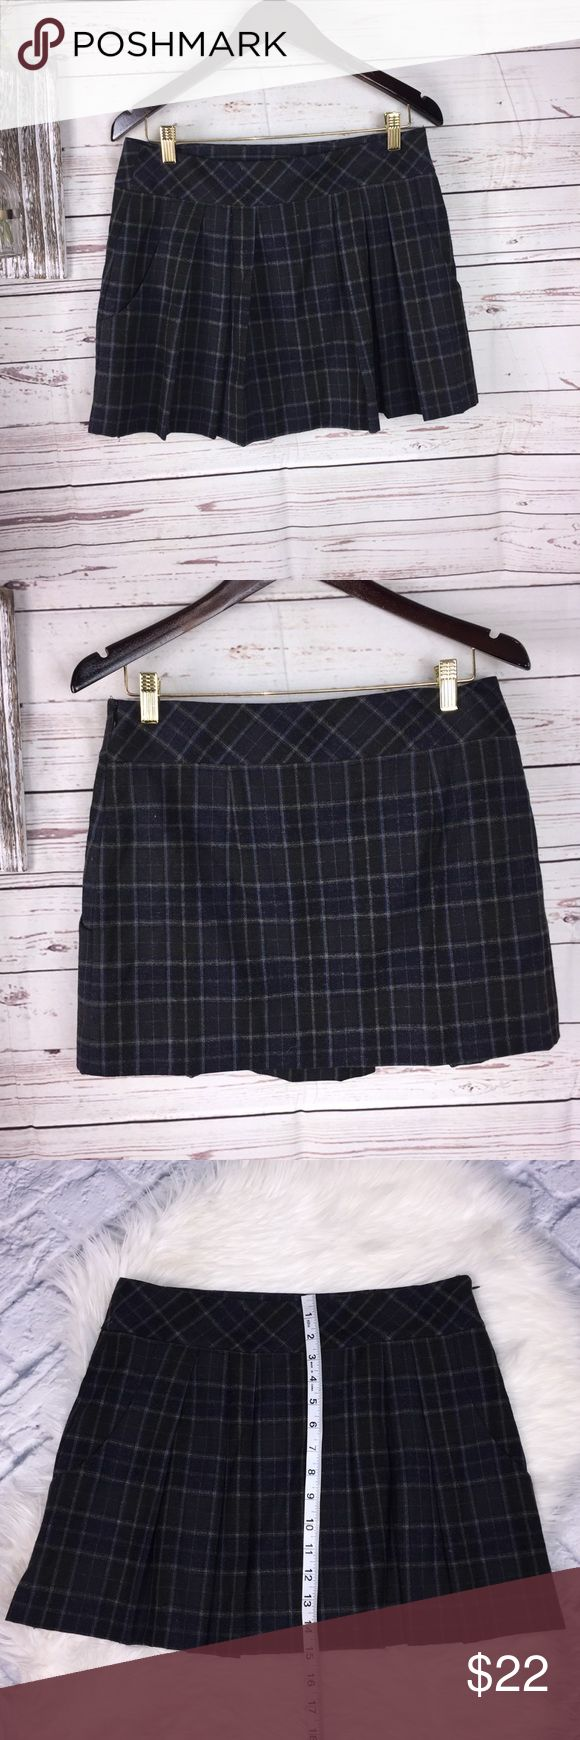 Theory Wool blend plaid schoolgirl skirt 4 Theory Plaid Skirt Pleats in the front Two front pockets Side zipper Blue and gray plaid School girl style Fully lined Wide waistband Size 4 Theory Skirts Mini